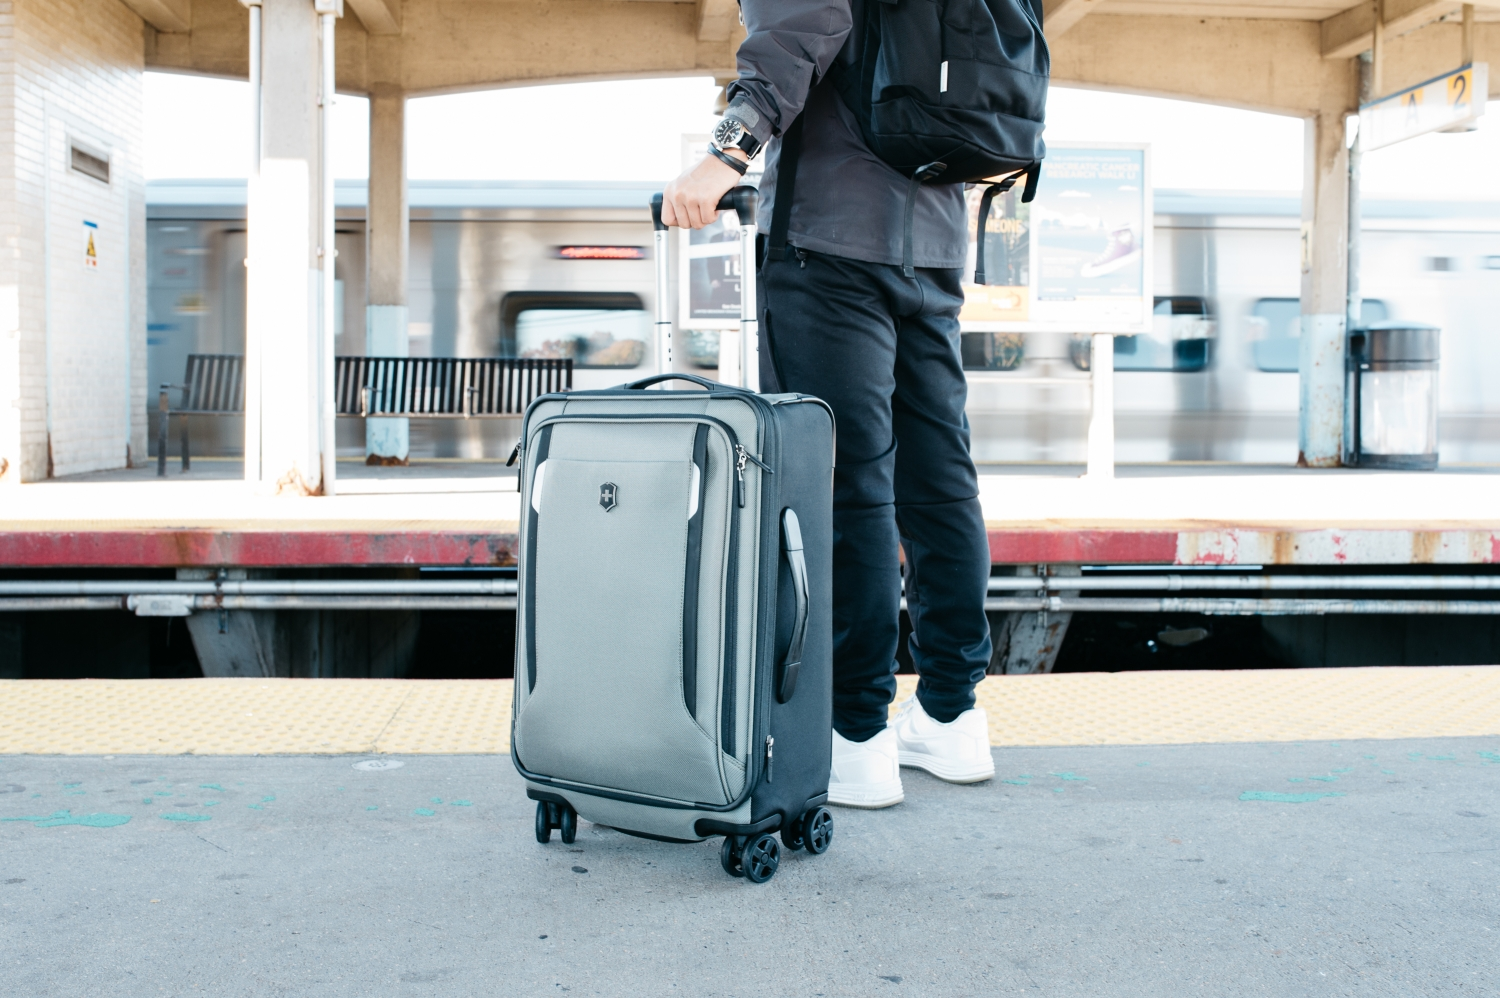 View the Victorinox Werks Traveler 5.0 series for more efficient suitcases and bags to pack your most important essentials your way.